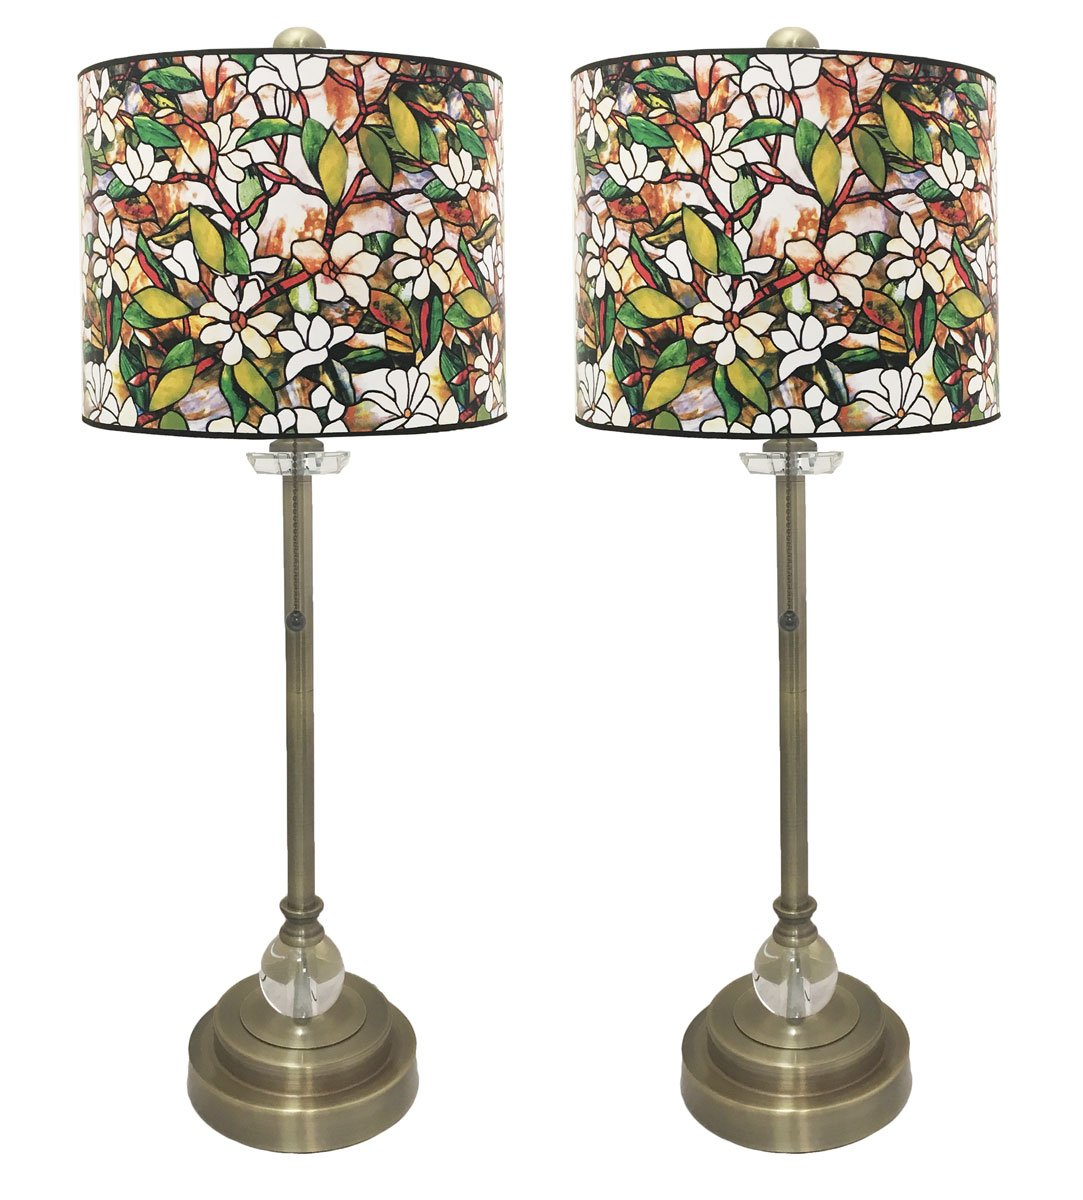 Royal Designs 28'' Crystal and Antique Brass Buffet Lamp with Magnolia Stained Glass Design Hard Back Lamp Shade, Set of 2